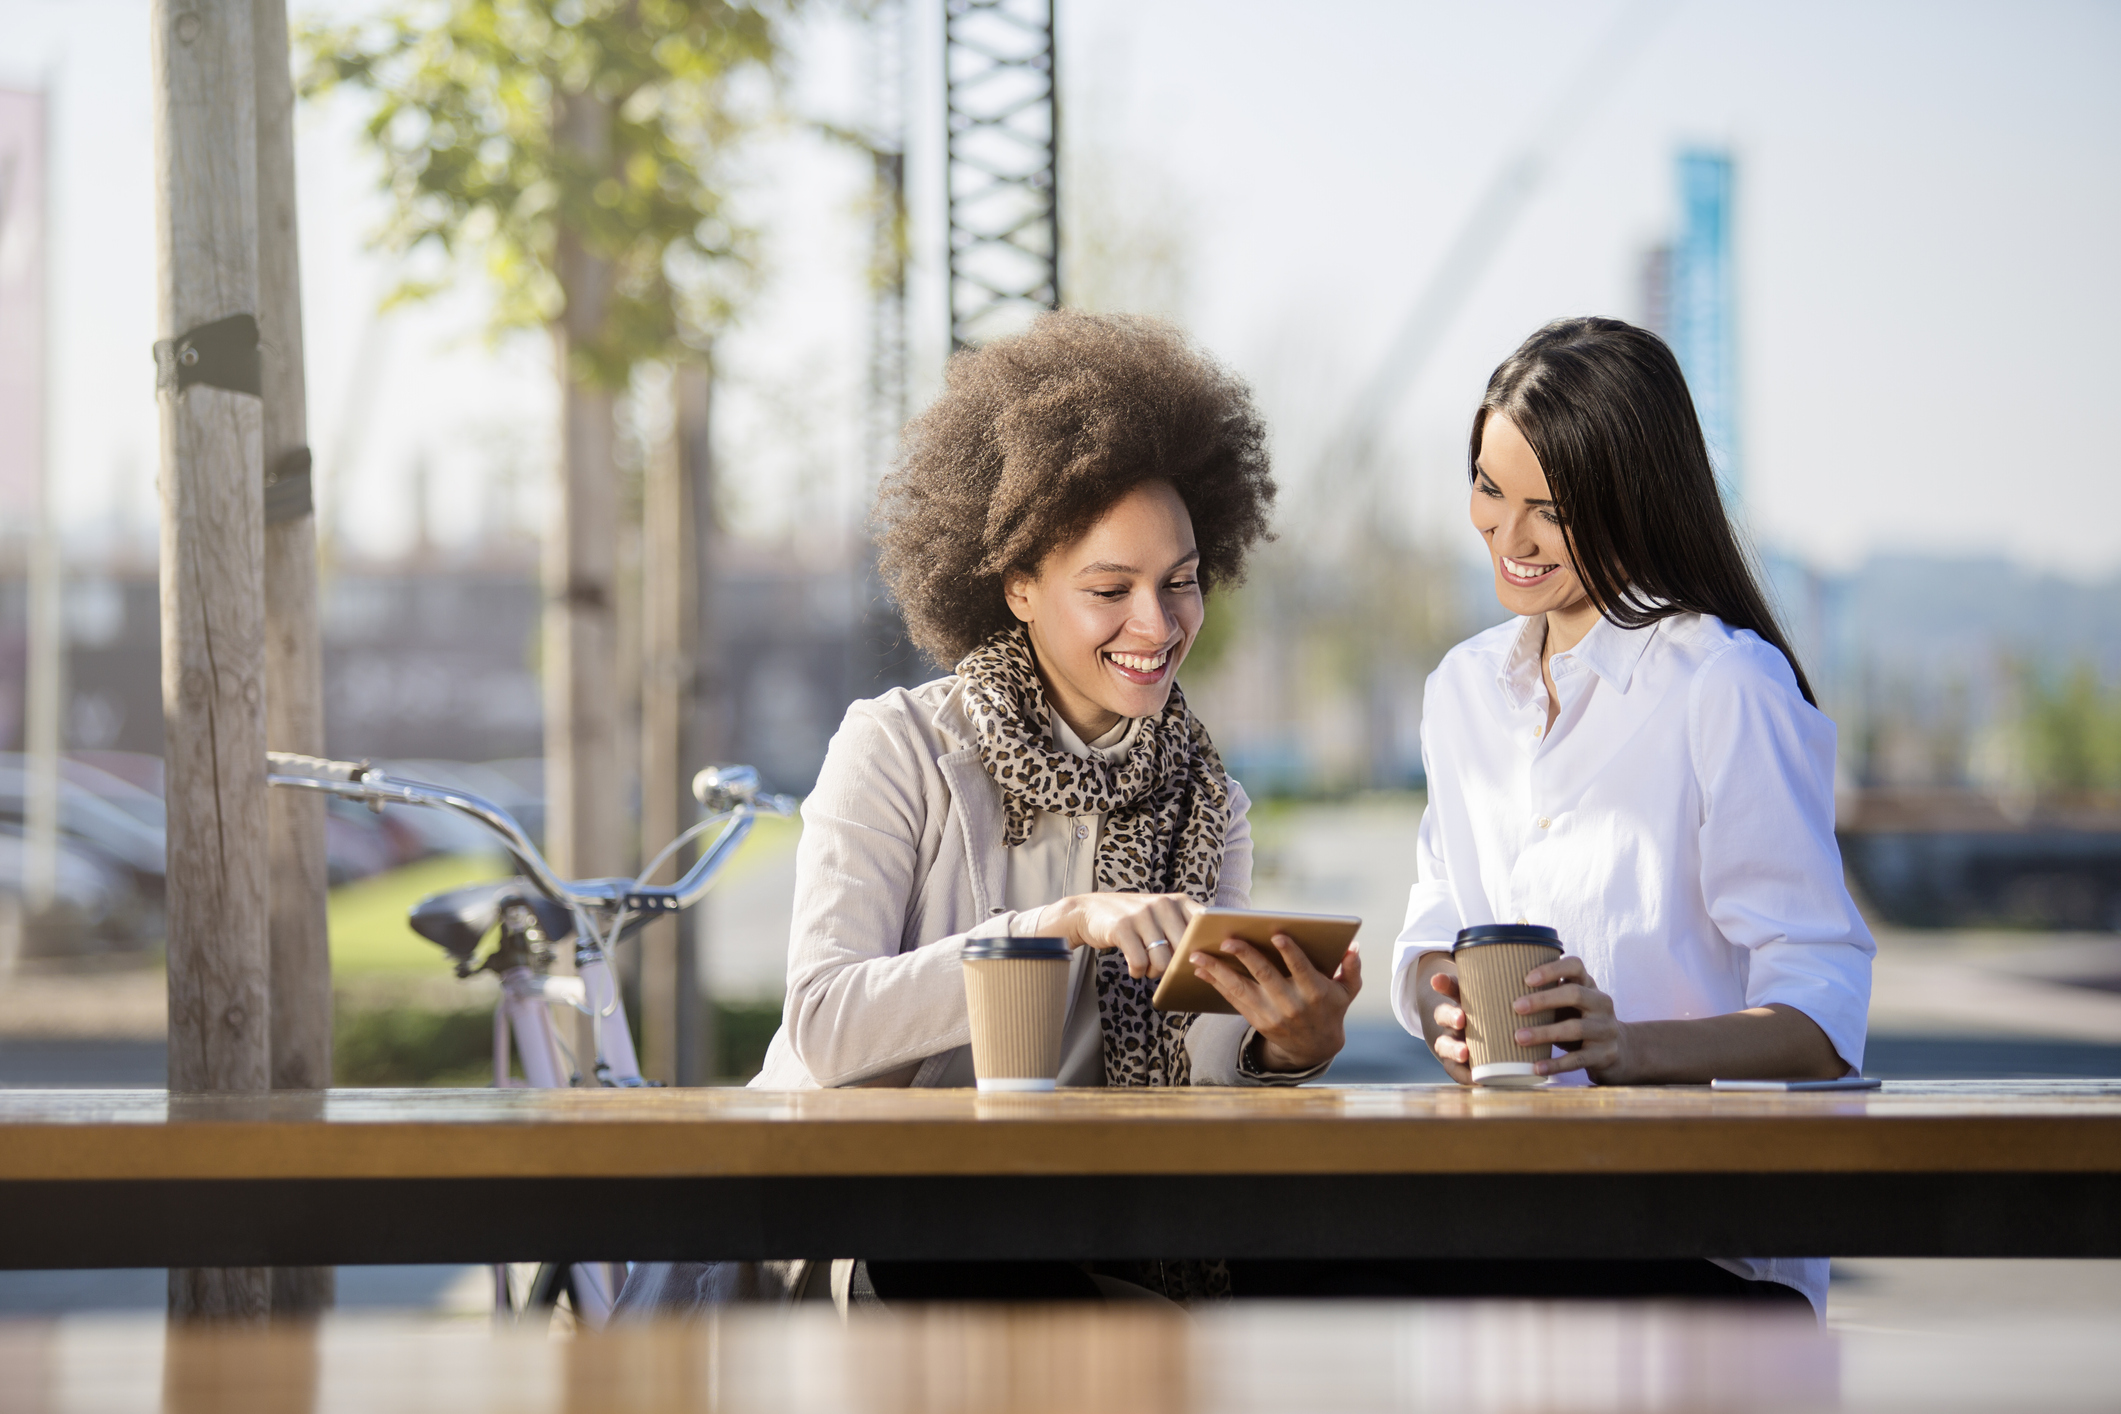 Women having coffee and talking outside